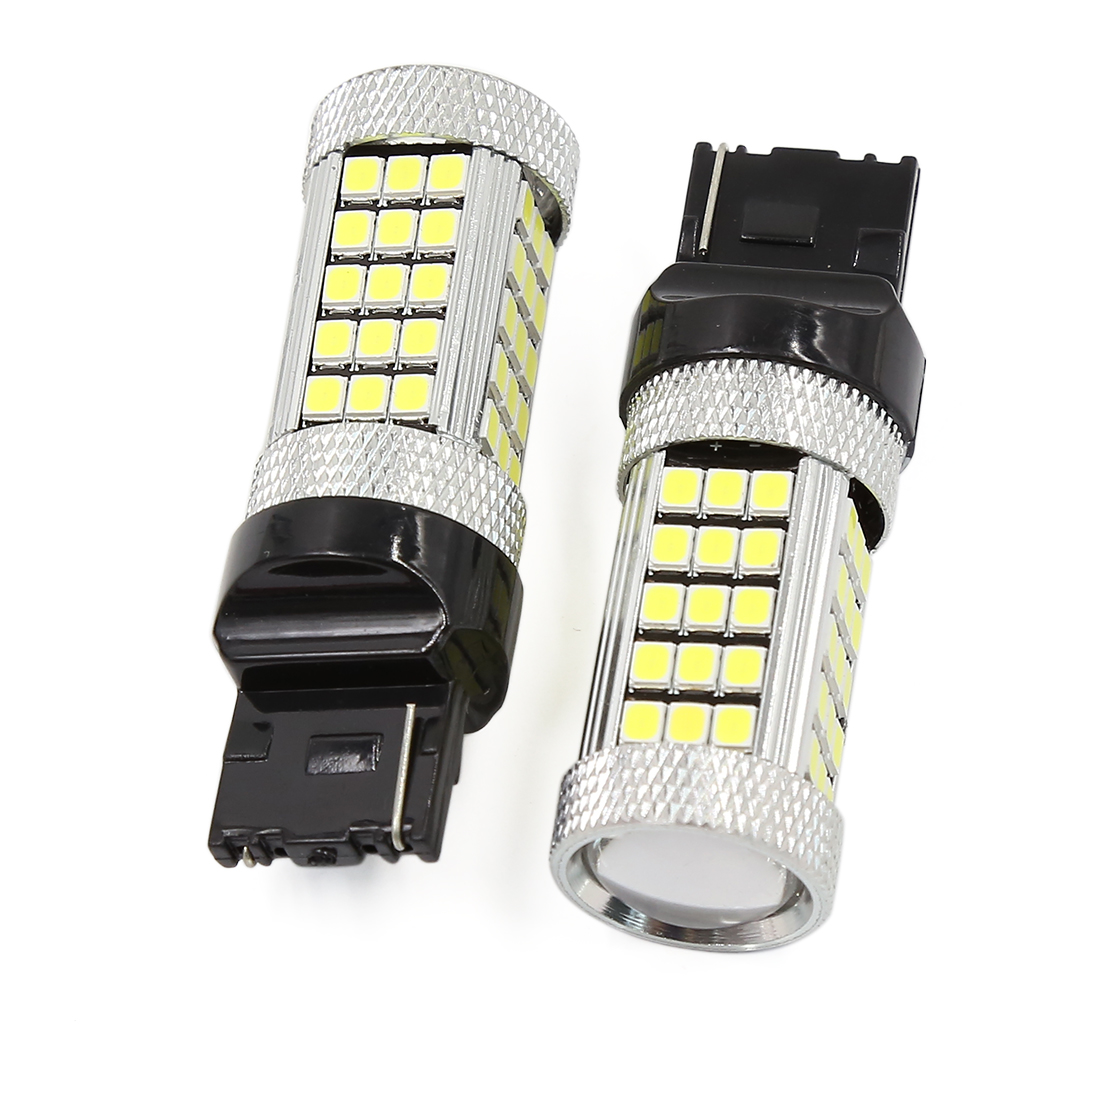 2 Pcs White T20 7440 63 LED 2832 SMD Car Brake Blub Turn Signal Light DC 12V